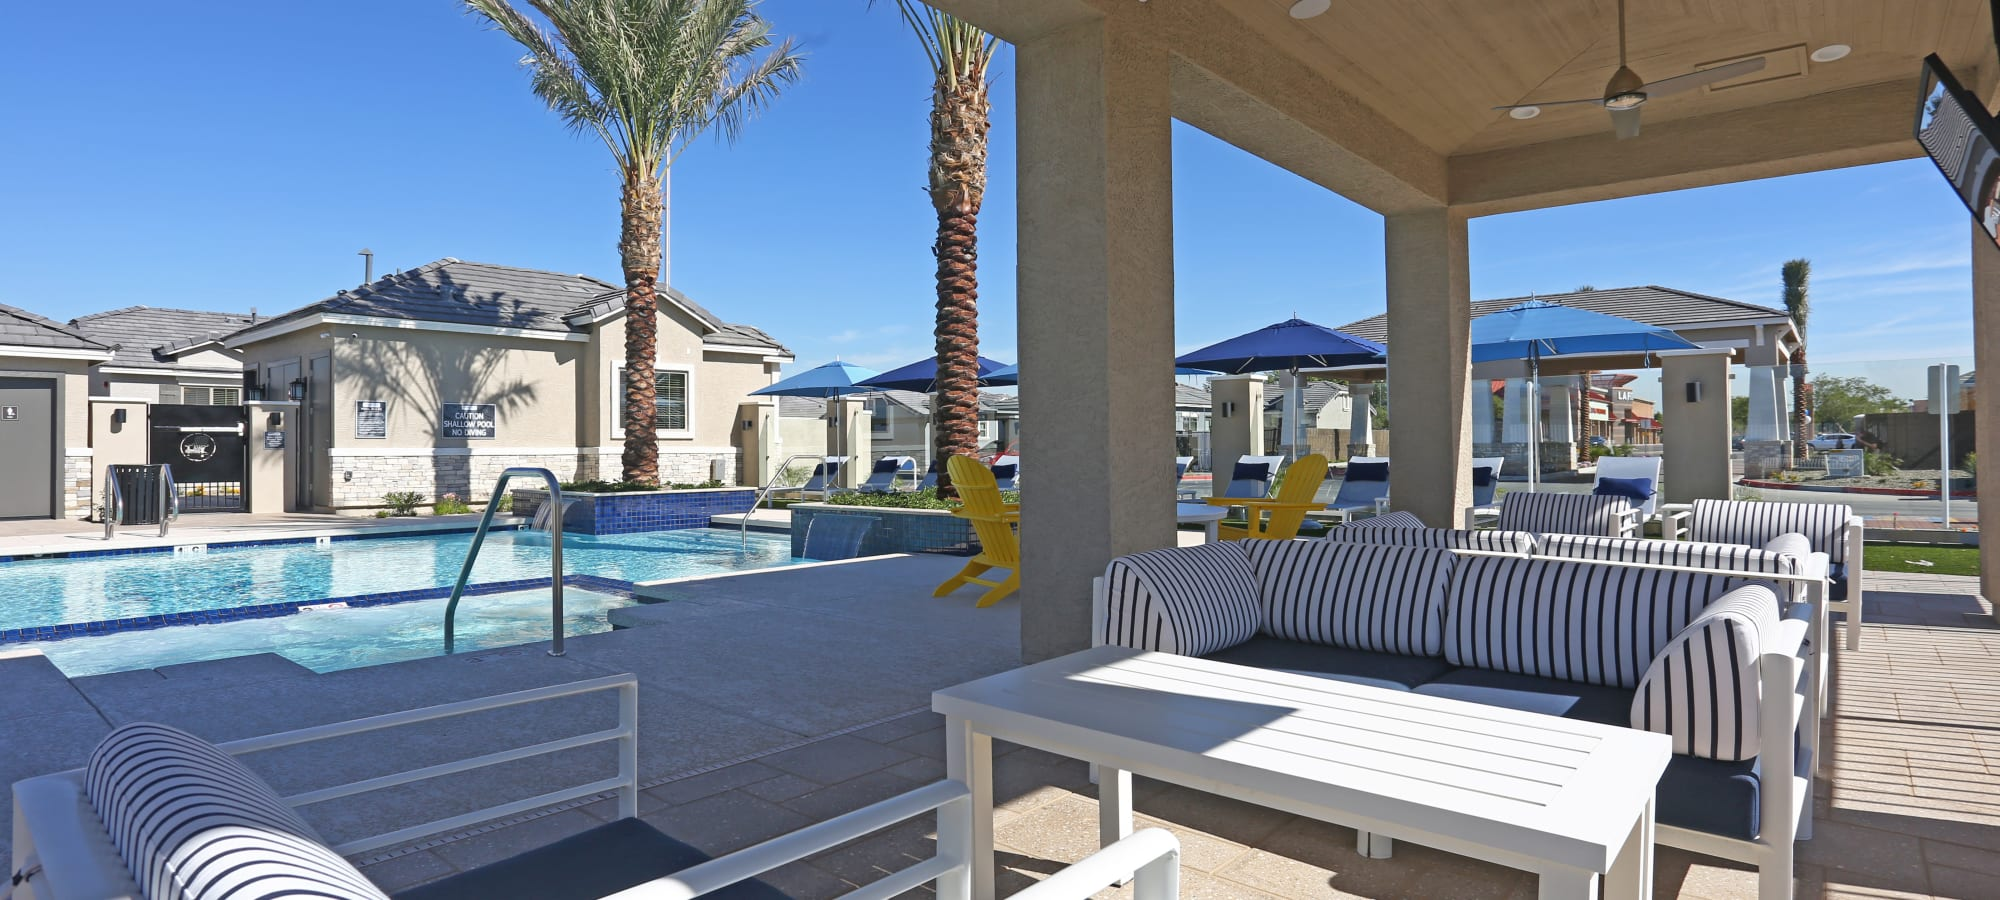 Lounge seating near the pool at Christopher Todd Communities At Estrella Commons in Goodyear, Arizona